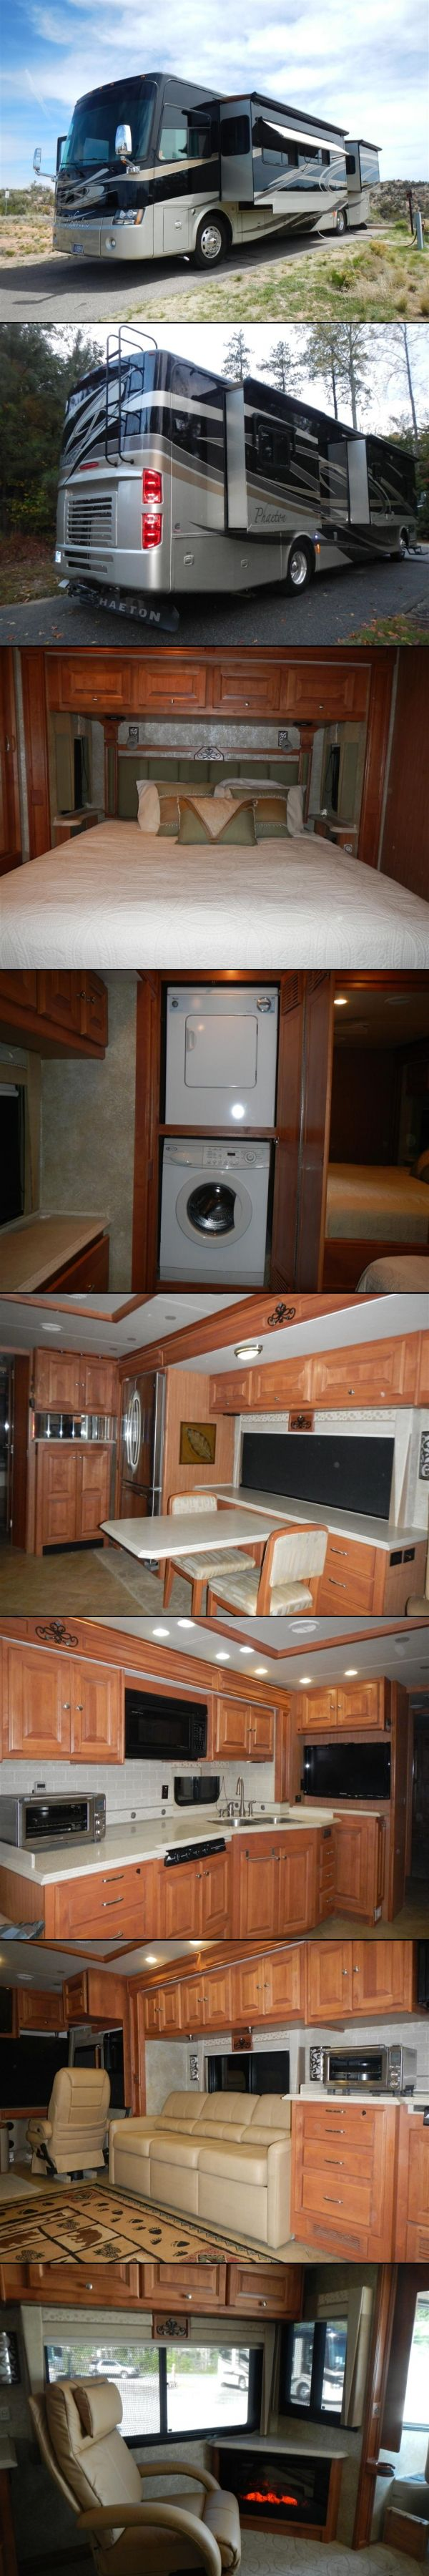 2010 Tiffin Phaeton Motorhome for sale! - created via http://pinthemall.net